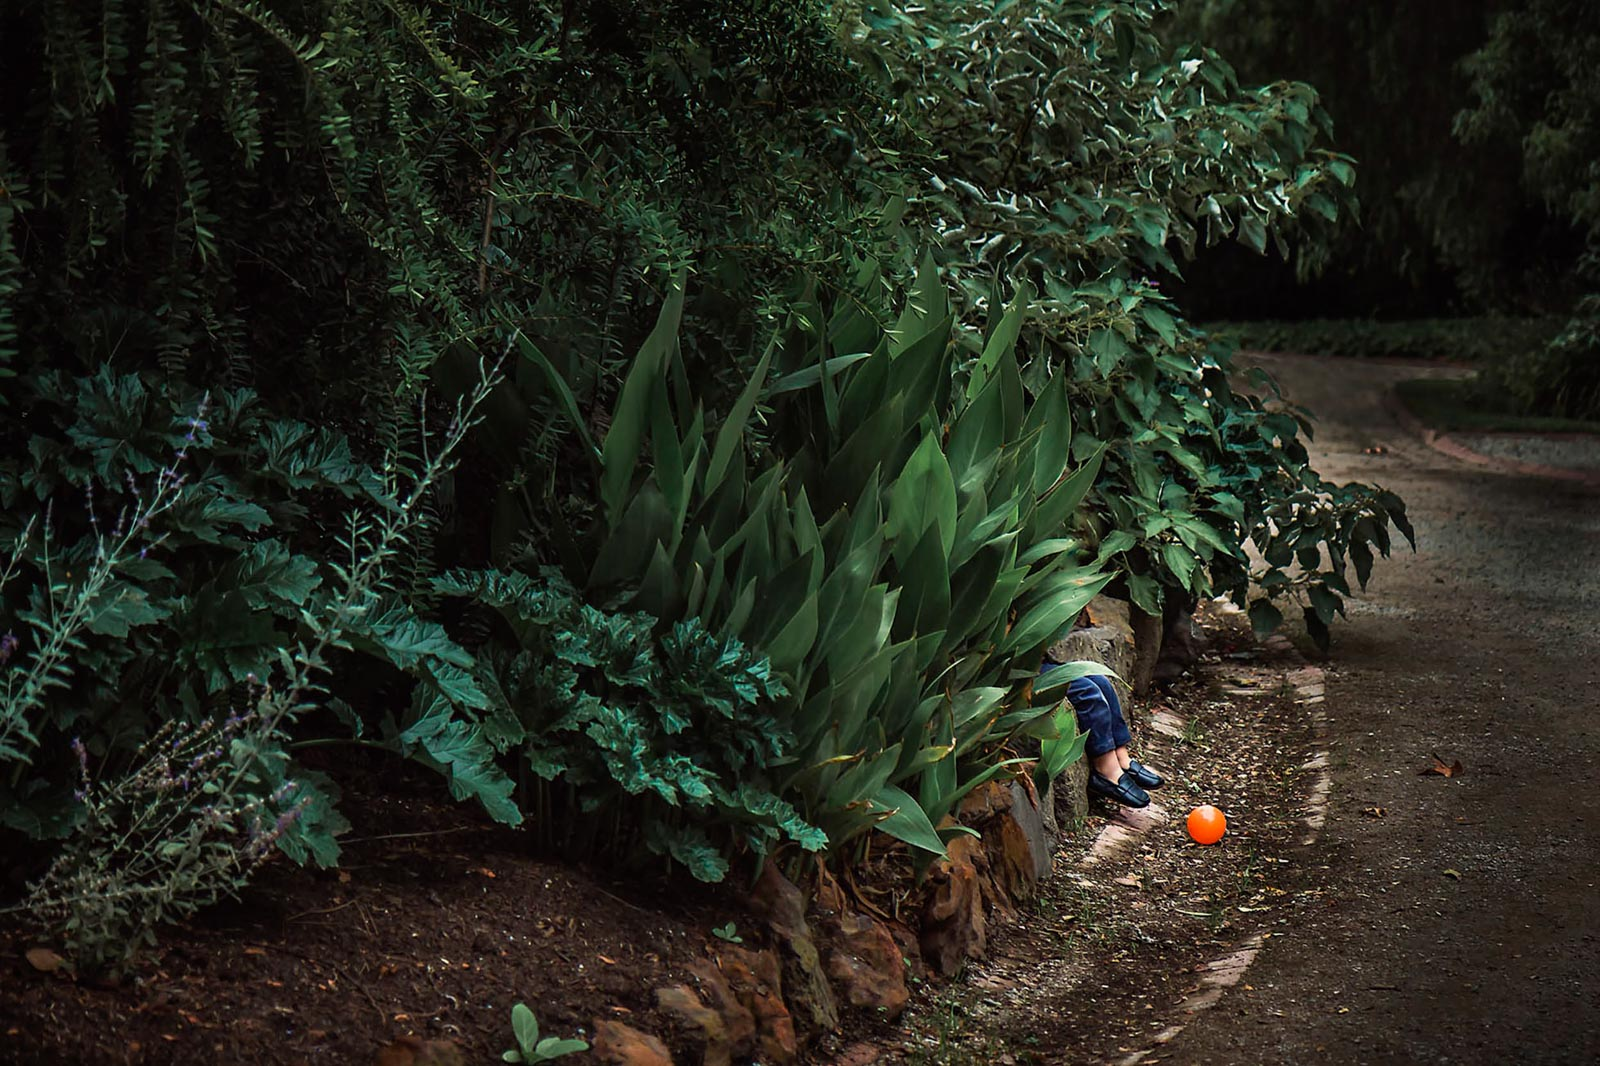 friendless_boy_alone_garden_orange_ball_waiting_friend_annick_simon_photographe_famille_quebec